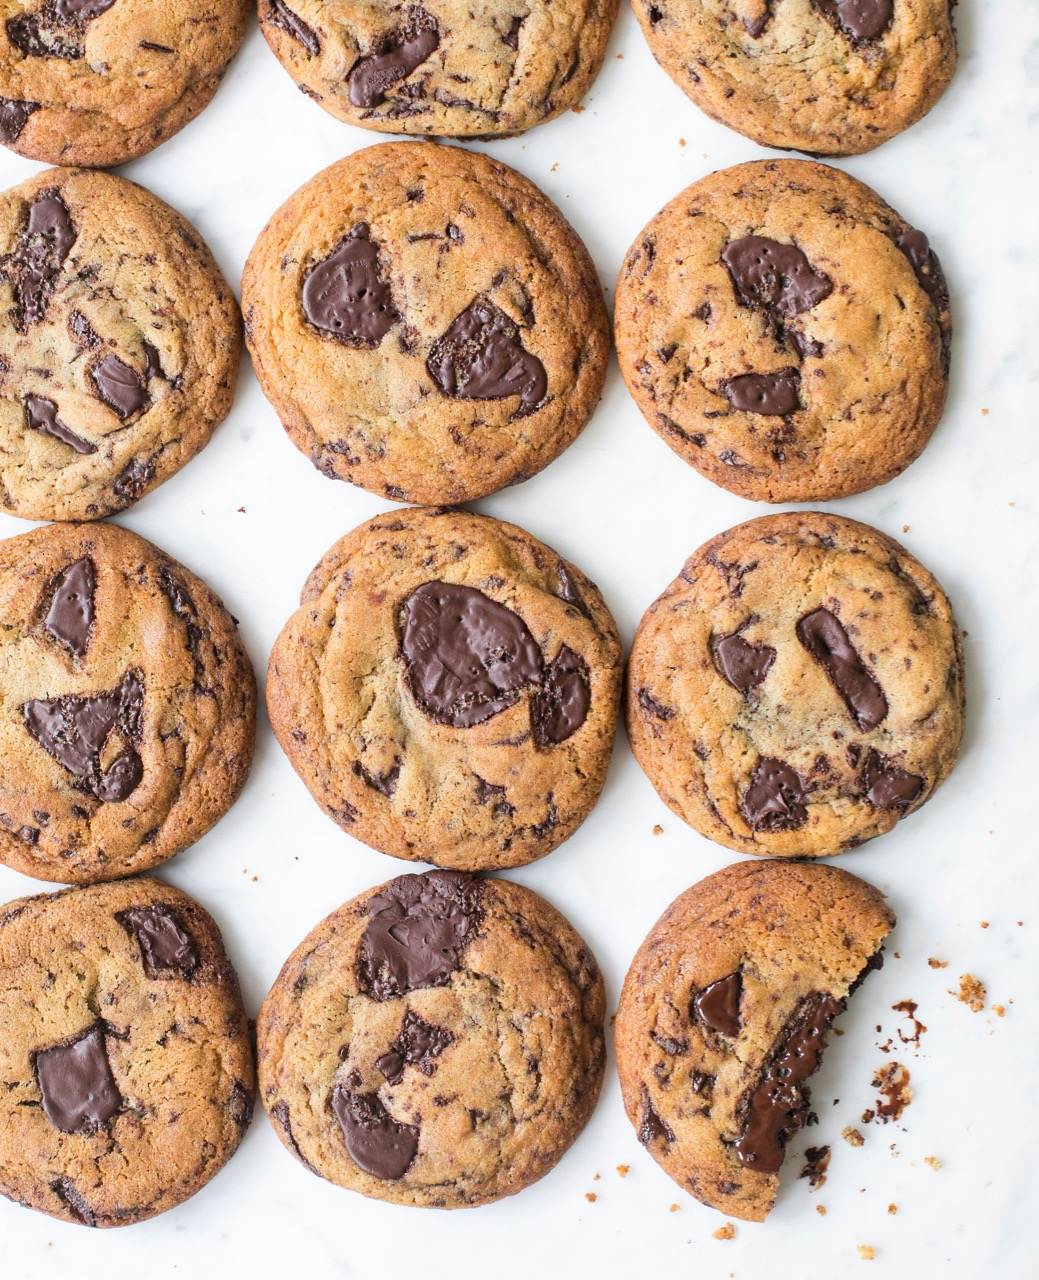 Gemma's 5 Star Chocolate Chip Cookies from the Bigger Bolder Baking Cookbook